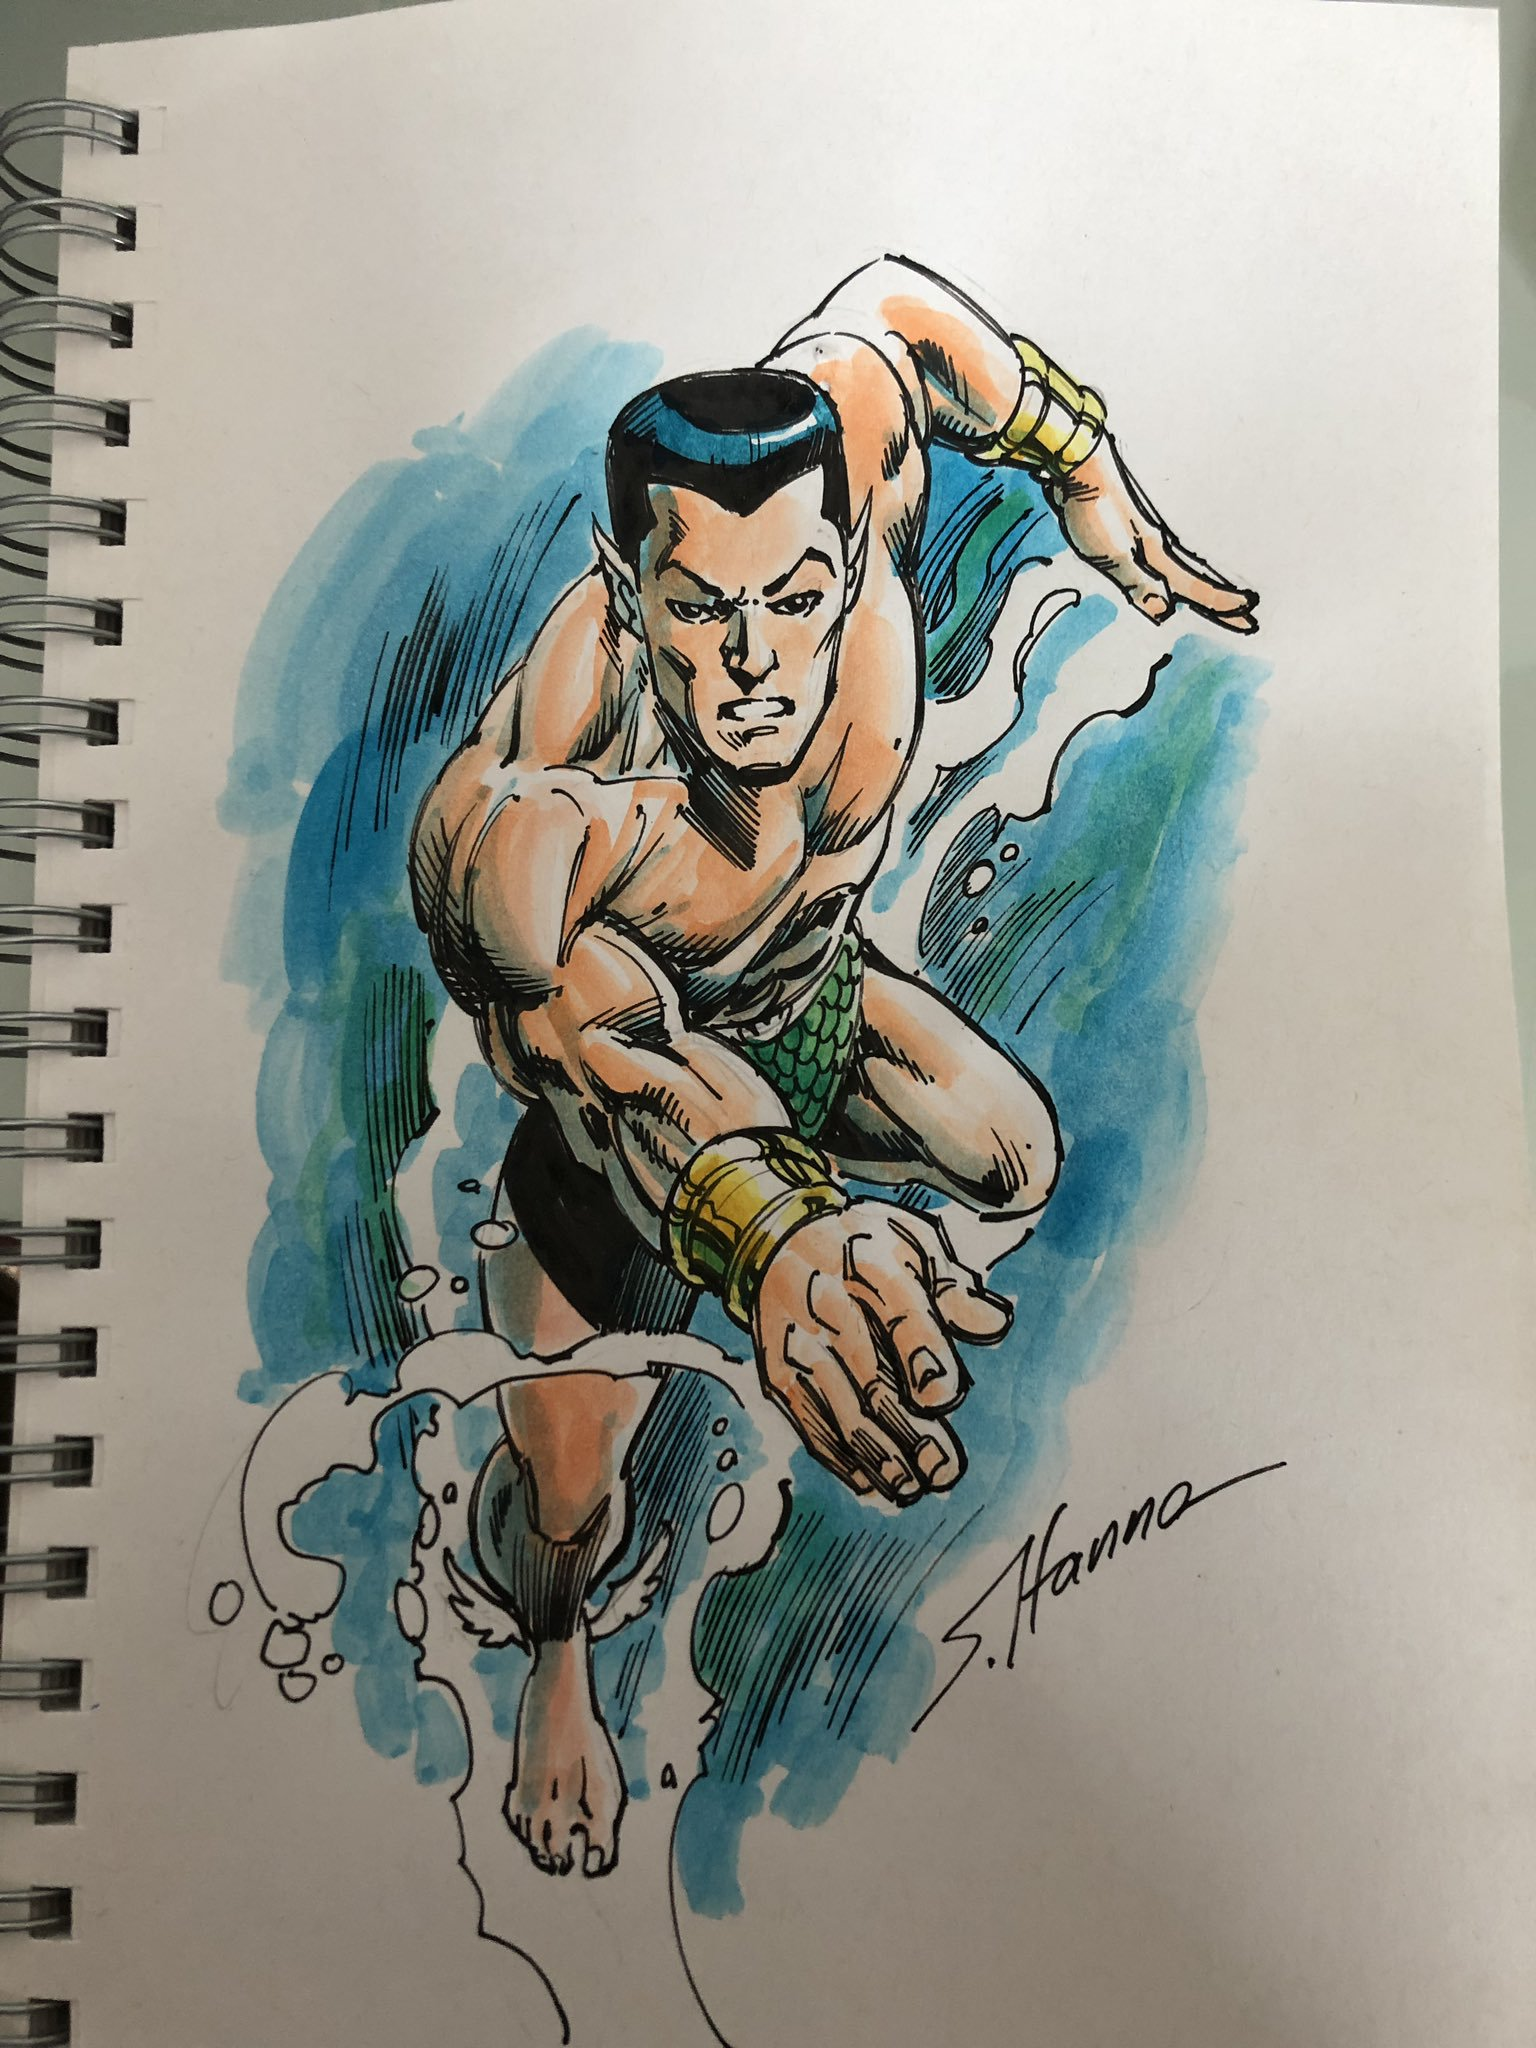 Namor by Scott Hanna (for Ryan)